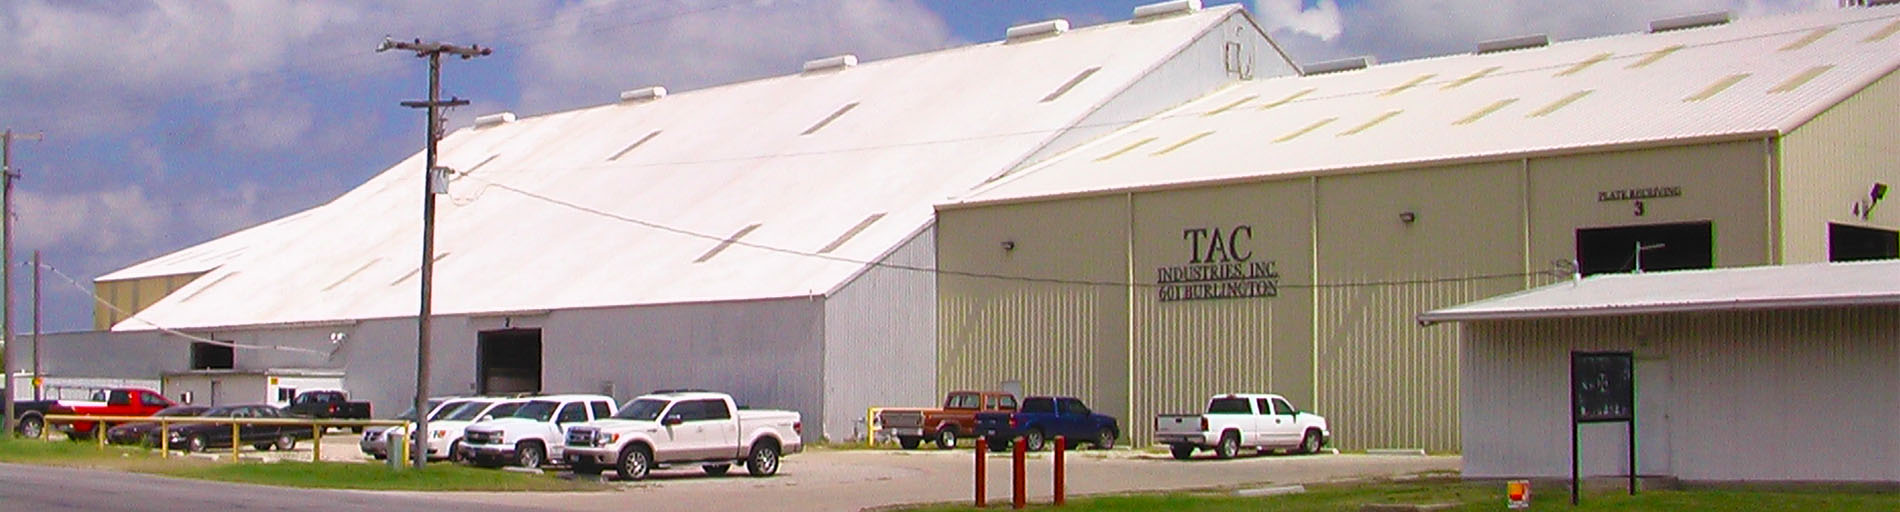 <h2>Metal Fabrication</h2><br/> TAC Industries, Inc. was incorporated and started in 1975. TAC provides a wide range of metal fabrication services to fulfill customer requirements. Dedicated personnel and the right equipment allow TAC Industries to produce quality custom fabricated products in a timely manner.